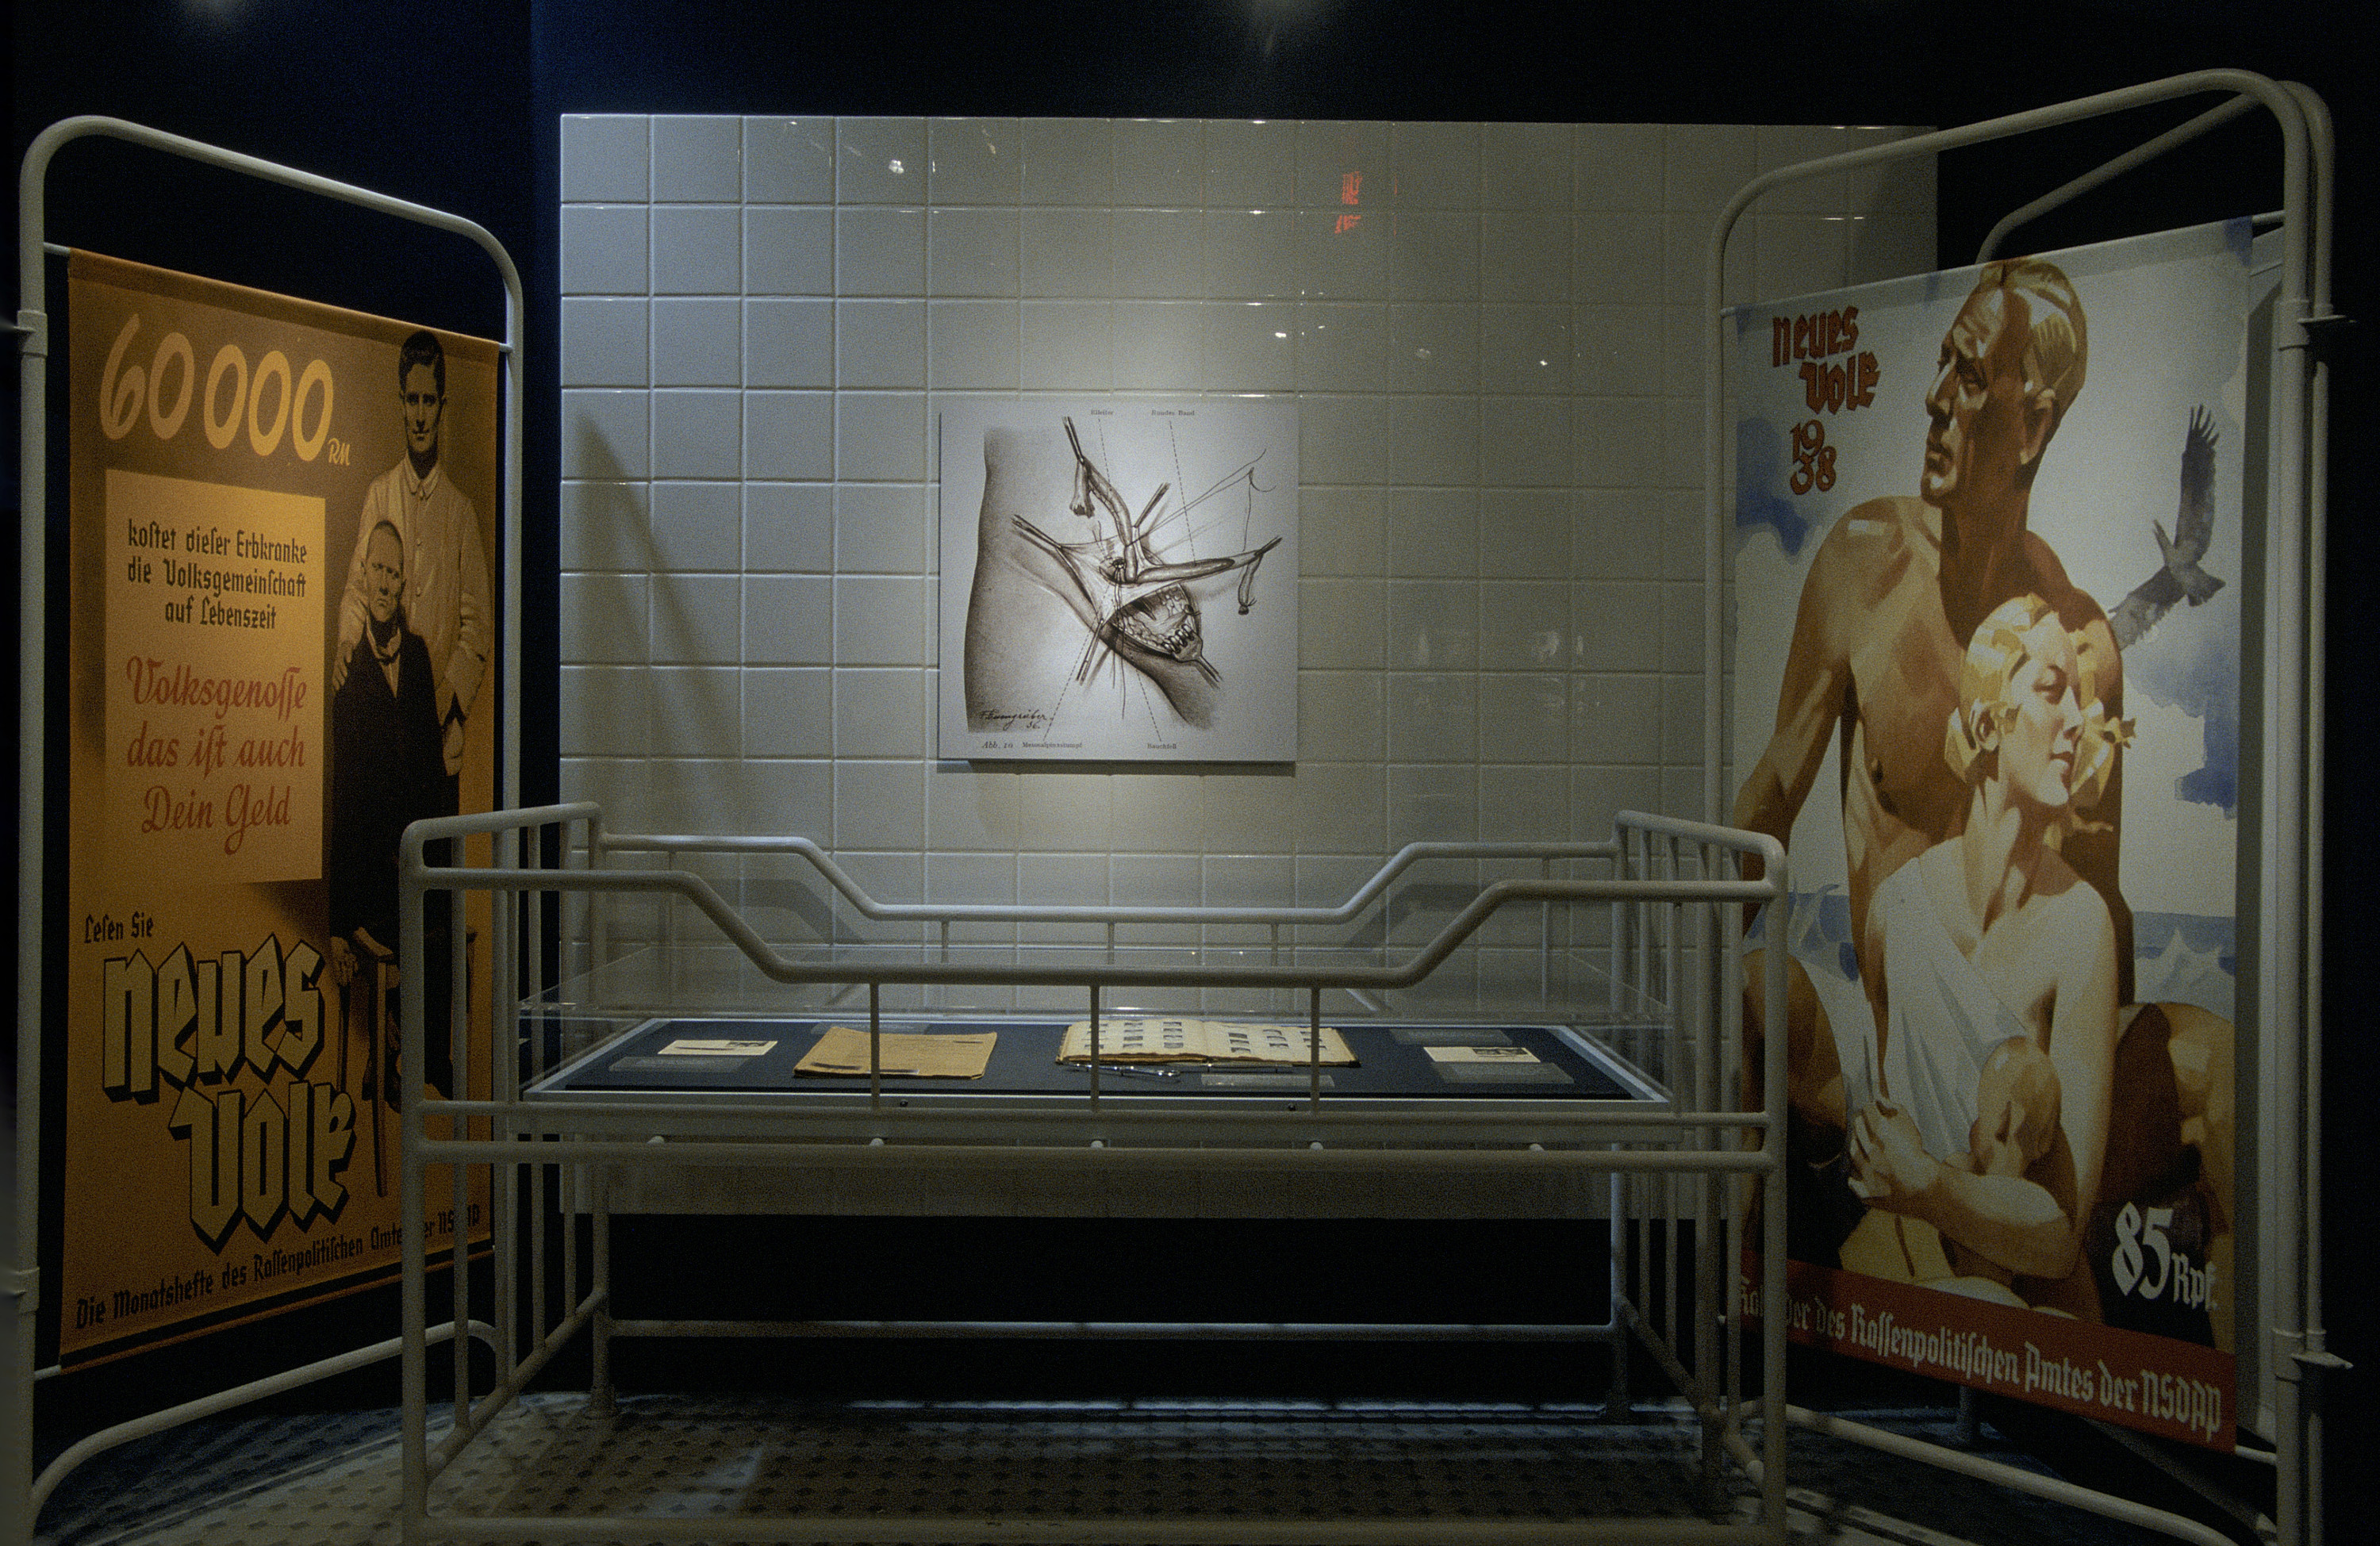 """One segment from the special exhibition, """"Deadly Medicine: Creating the Master Race,"""" U.S. Holocaust Memorial Museum, which opened on April 22, 2004."""